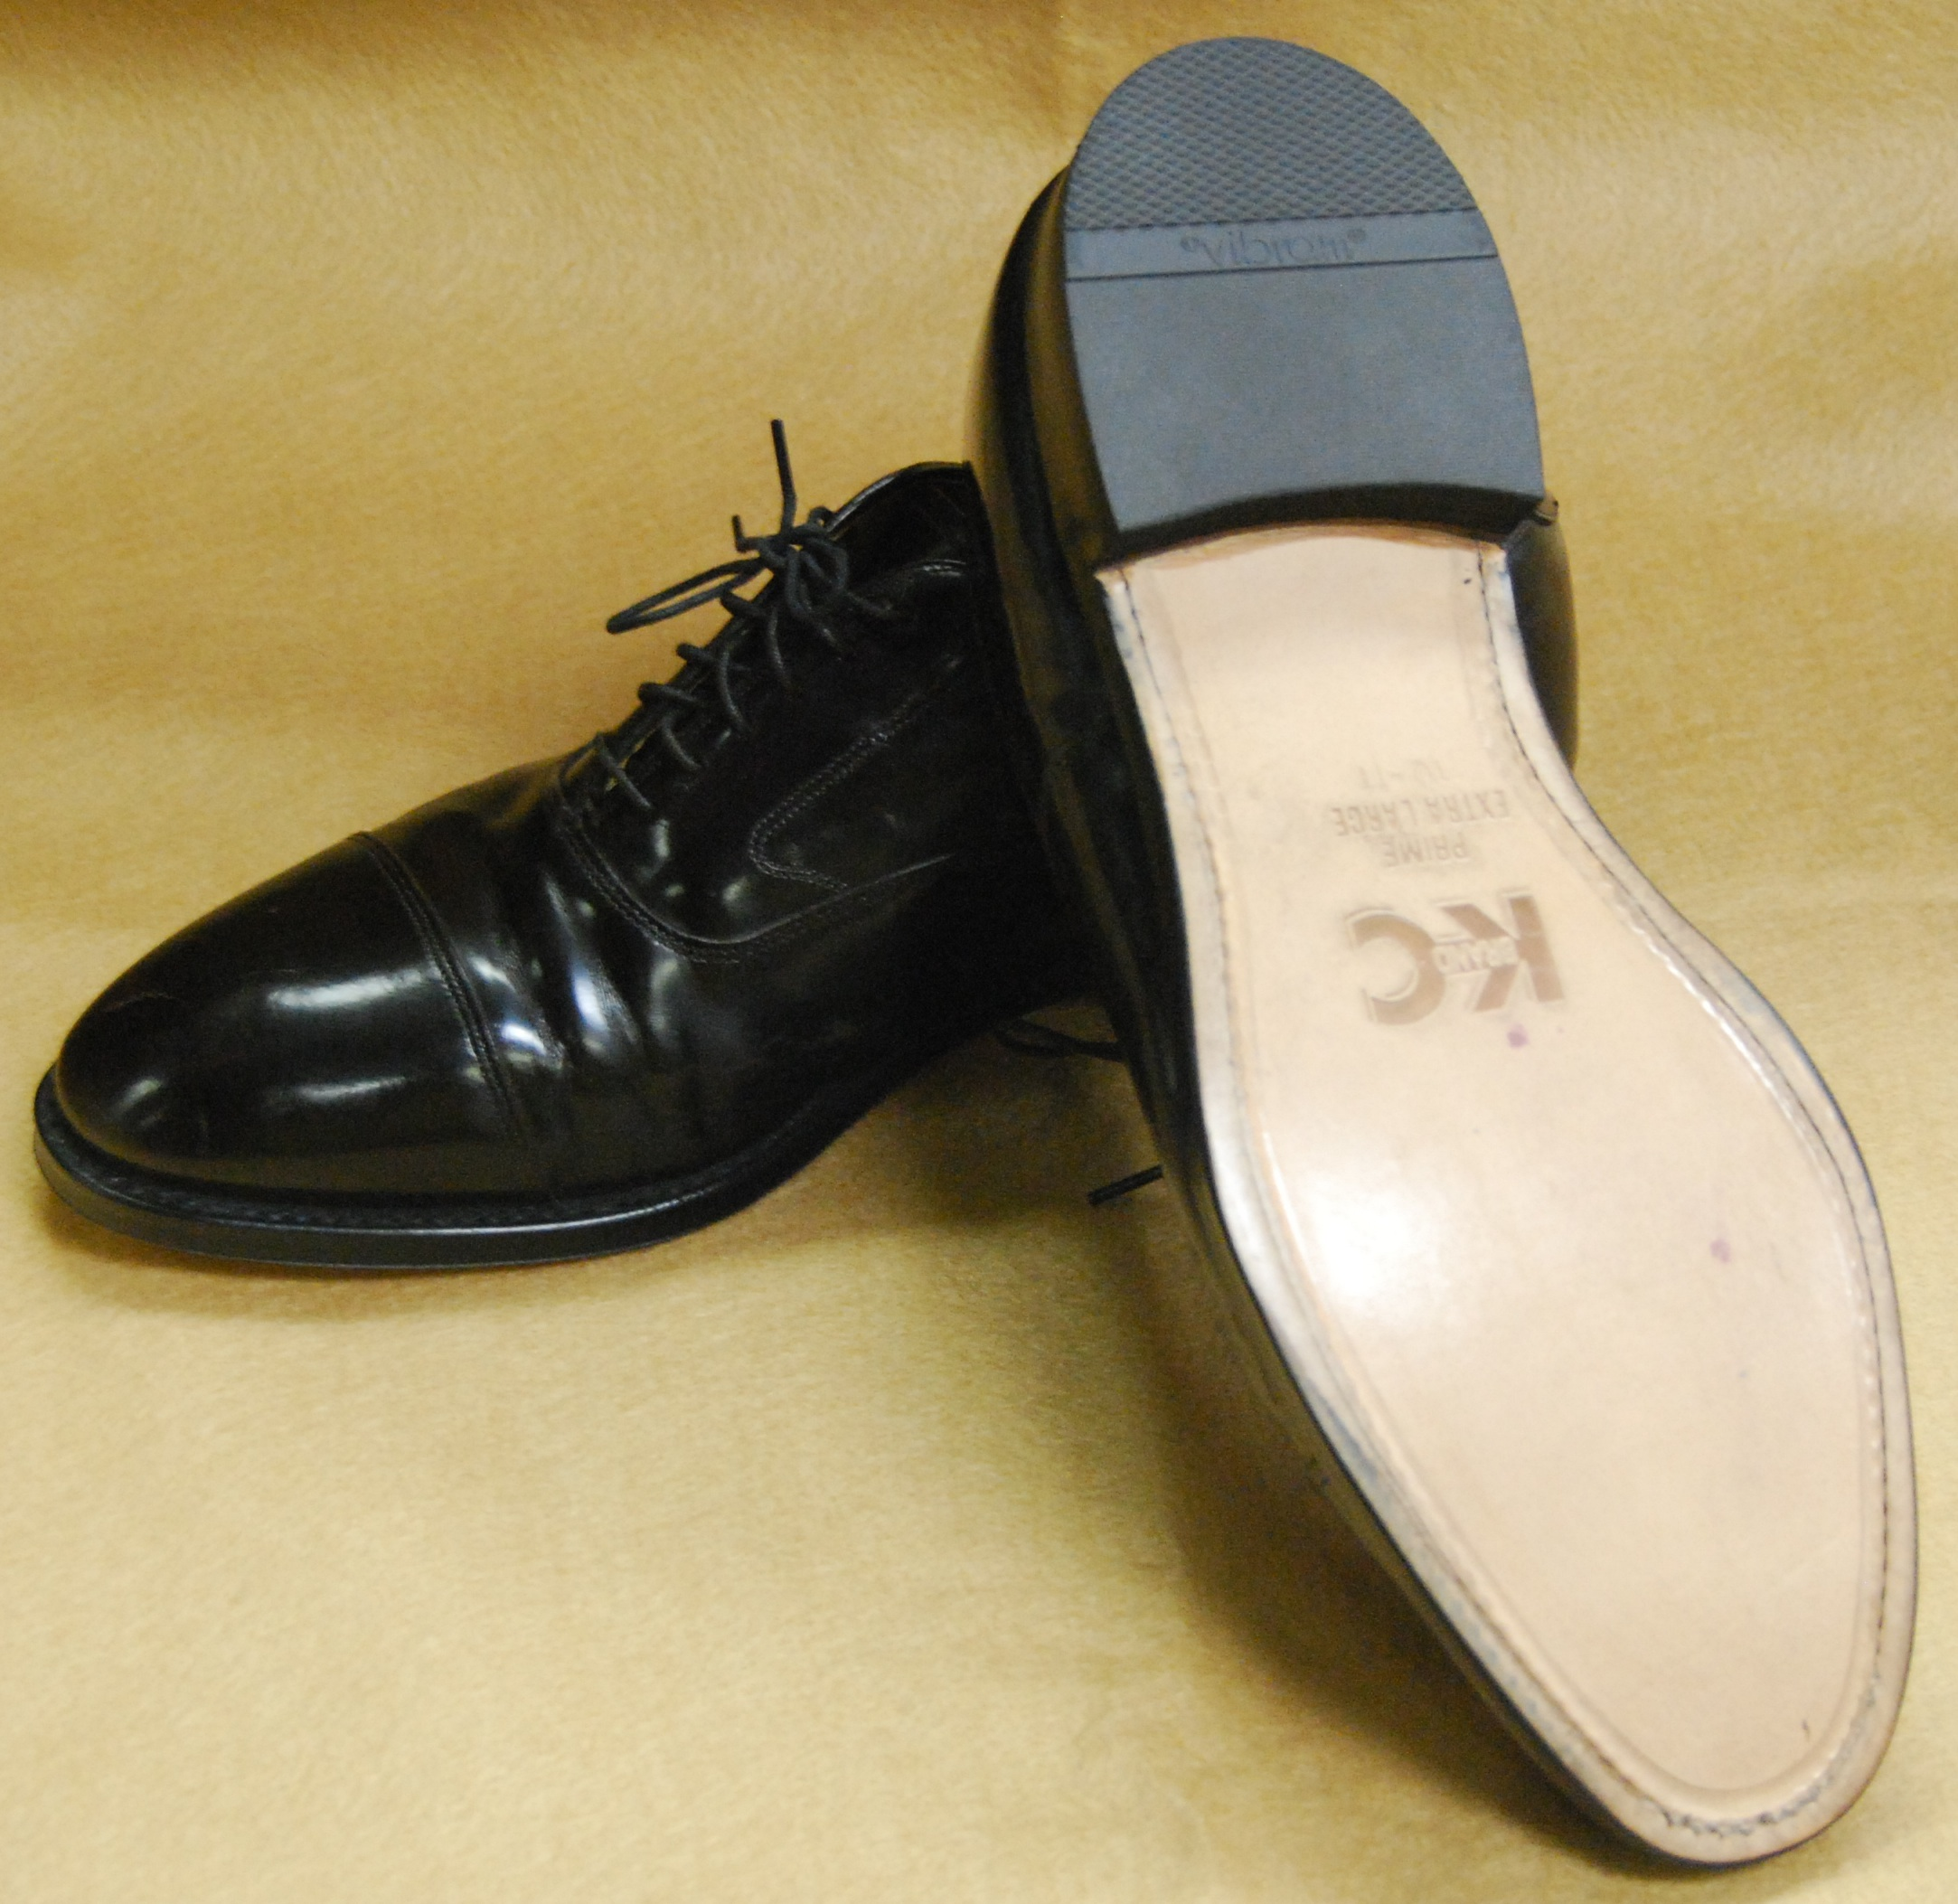 When To Resole Leather Soled Shoes